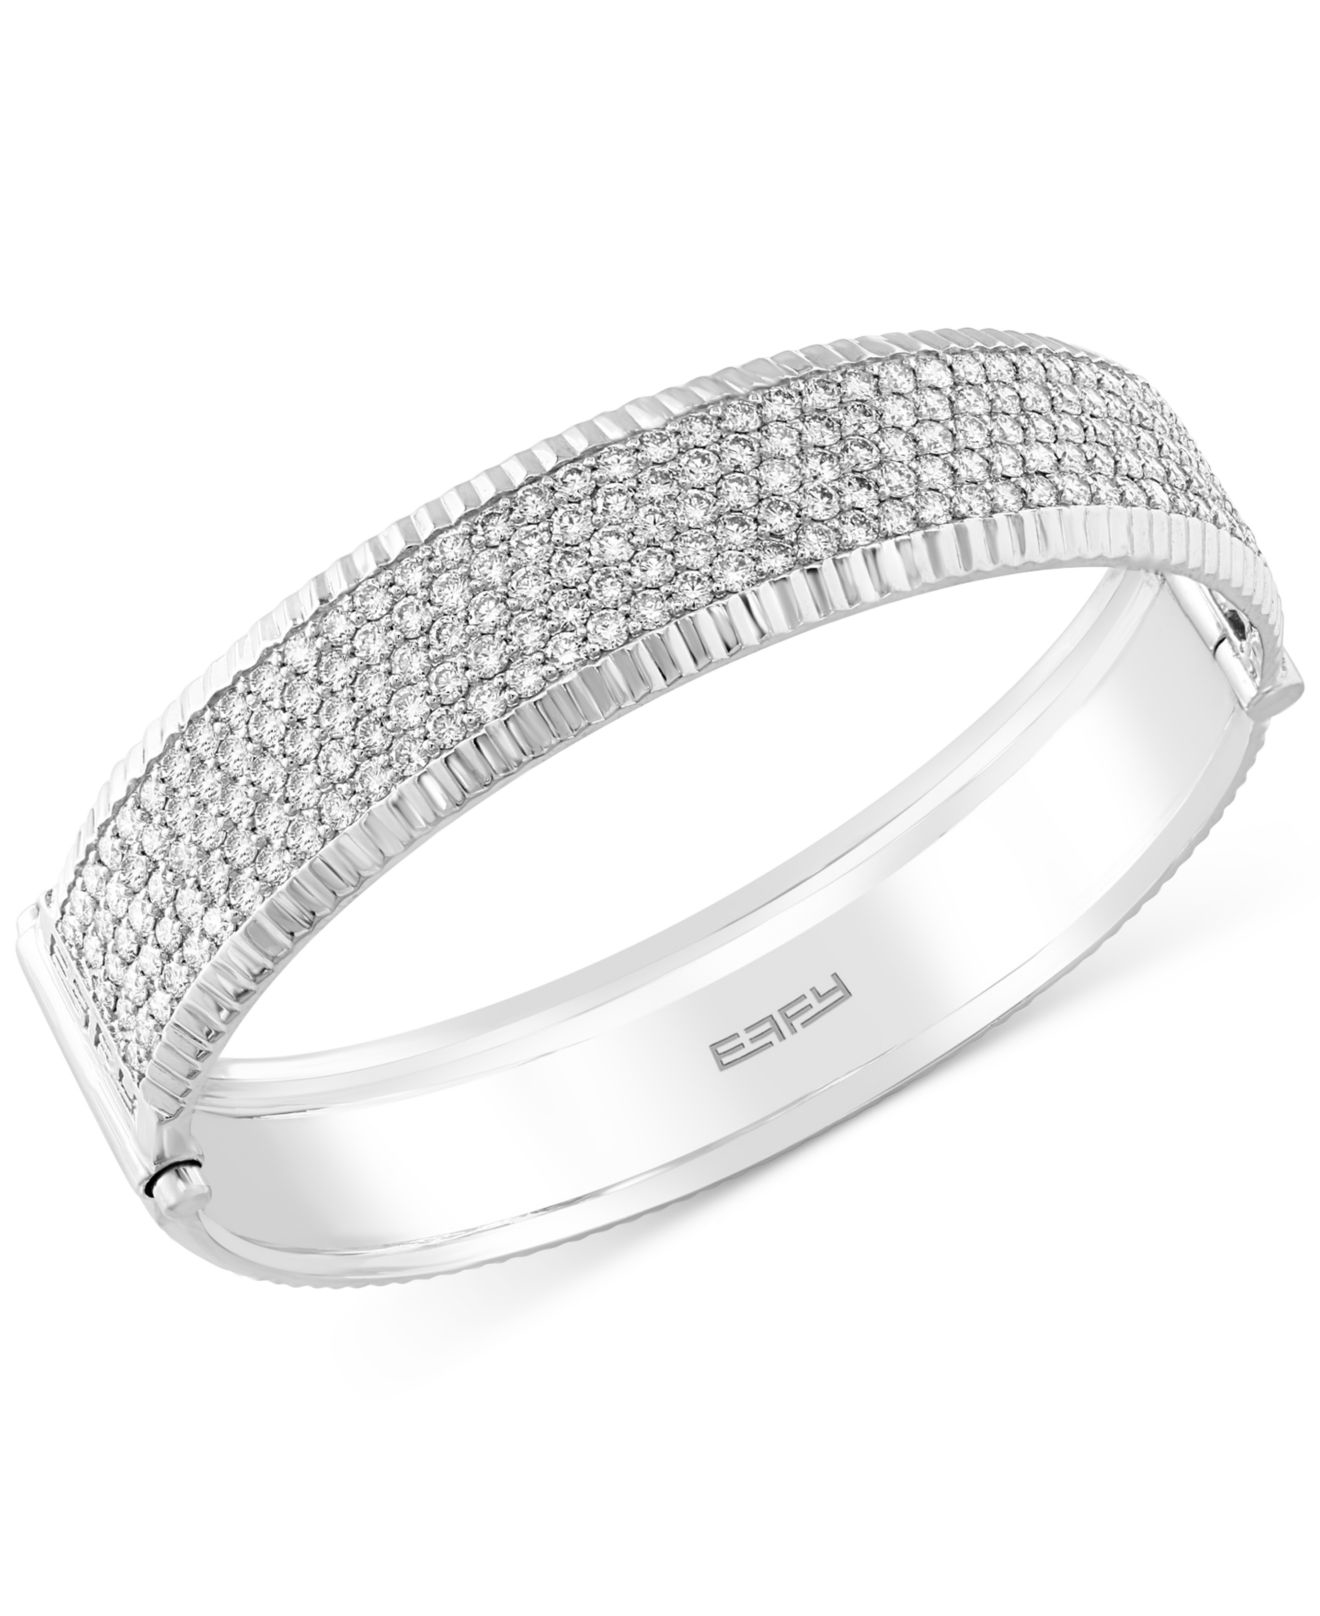 pave bulgari image bracelet b jewelry diamonds with diamond gold bangles white bangle